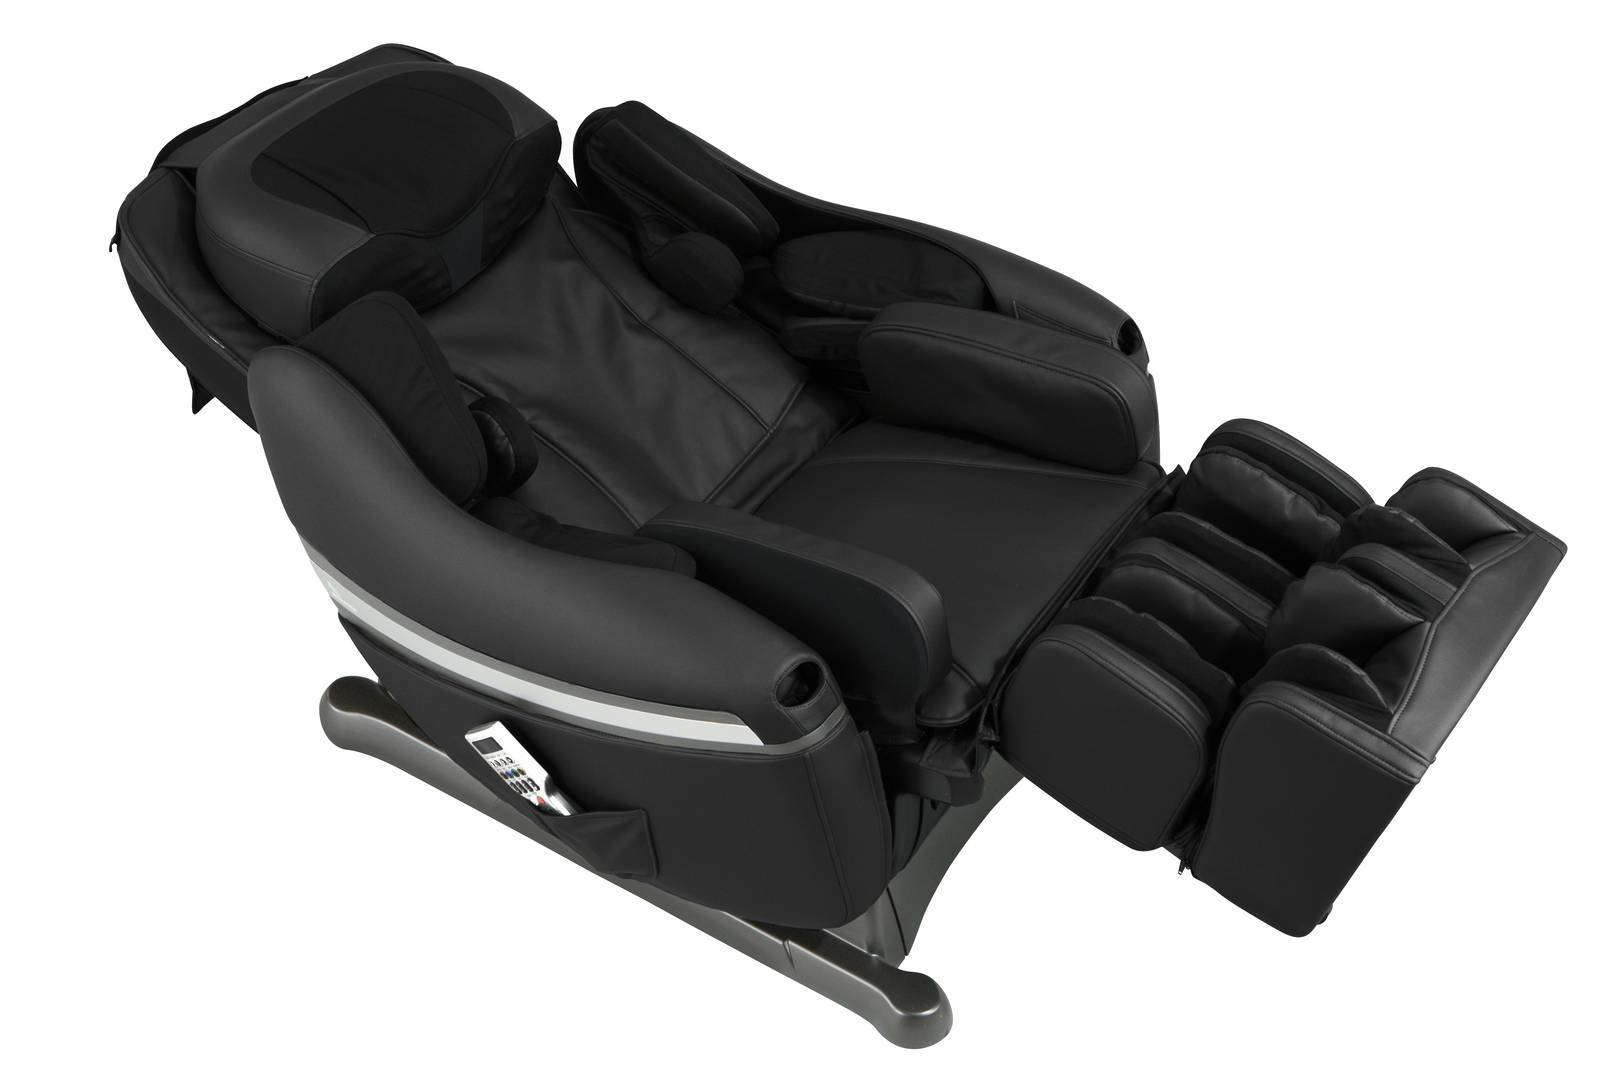 Inada Dreamwave Massage Chair Inada Dreamwave Massage Chair Previously Known As Sogno